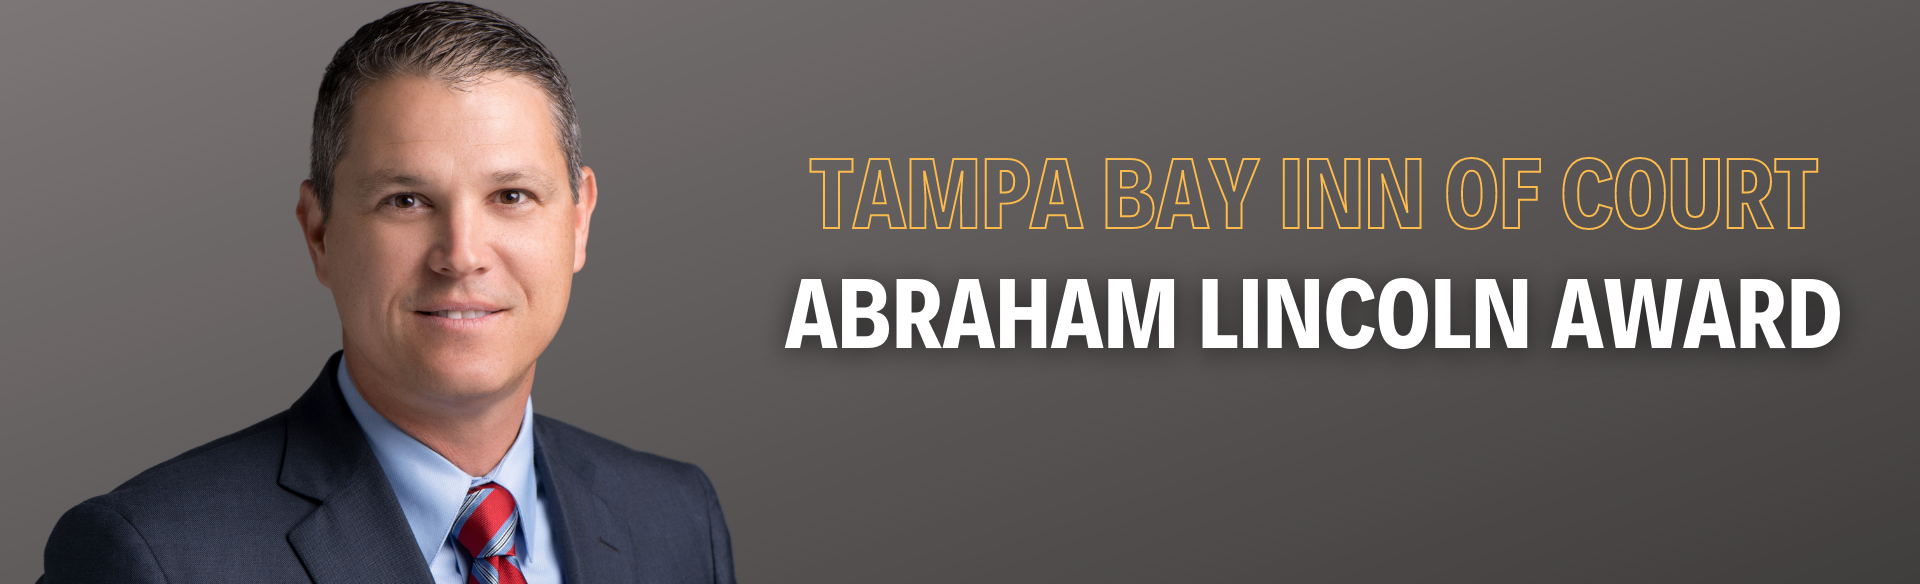 Brian Oblow is Recognized by the Tampa Bay American Inn of Court with the Abraham Lincoln Award featured image